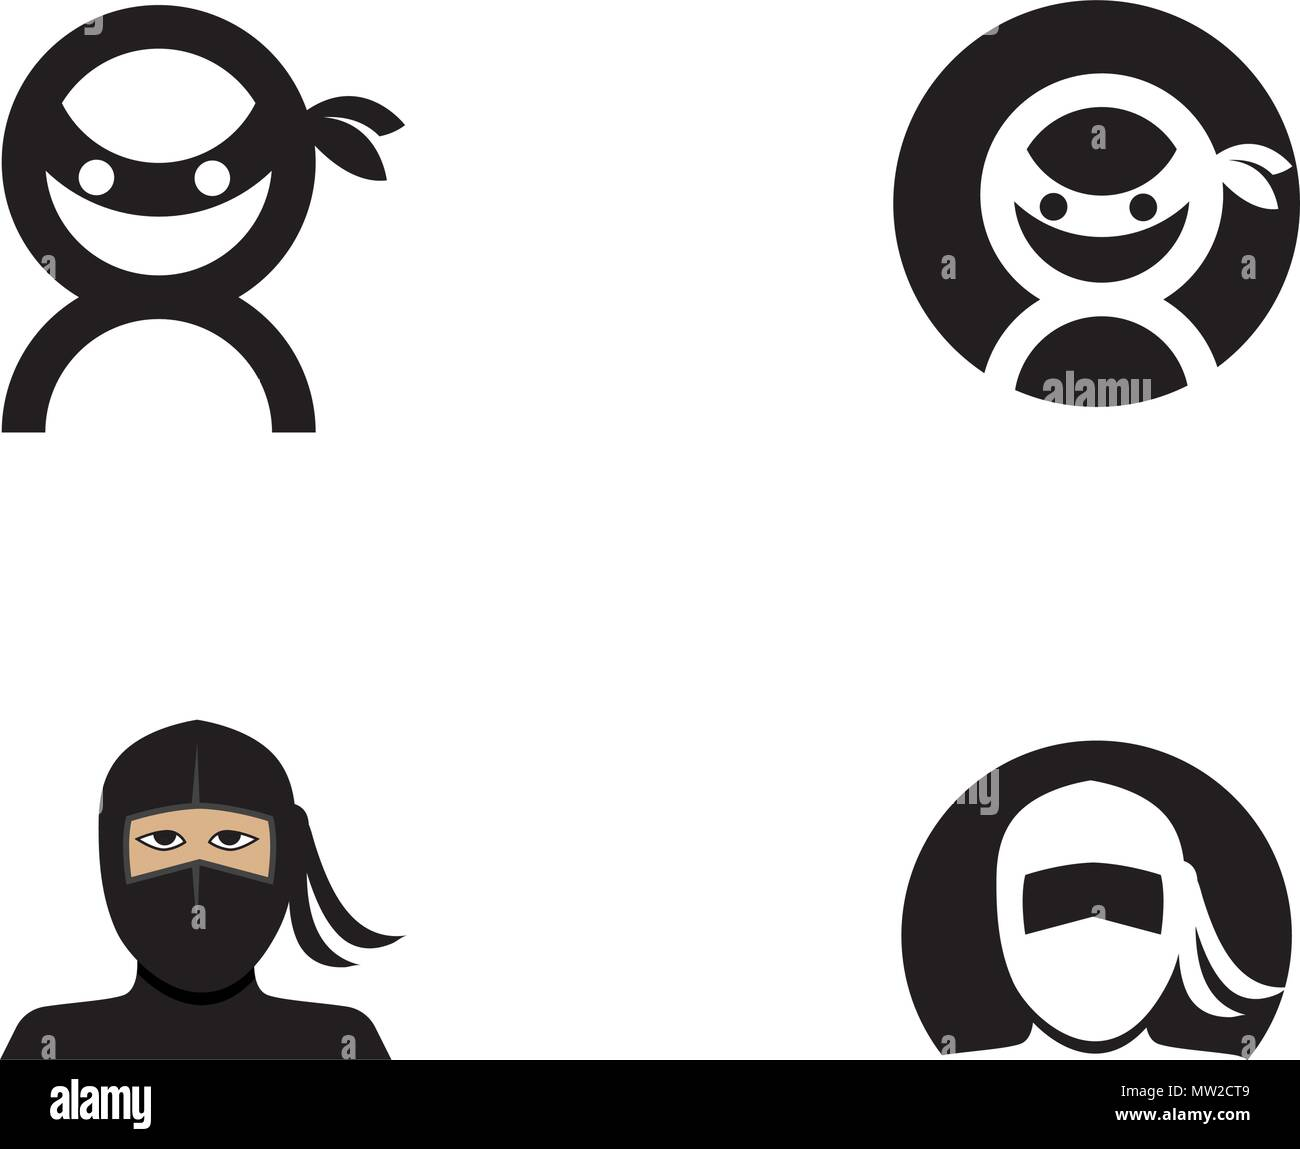 ninja icon vector illustration logo template design stock vector art